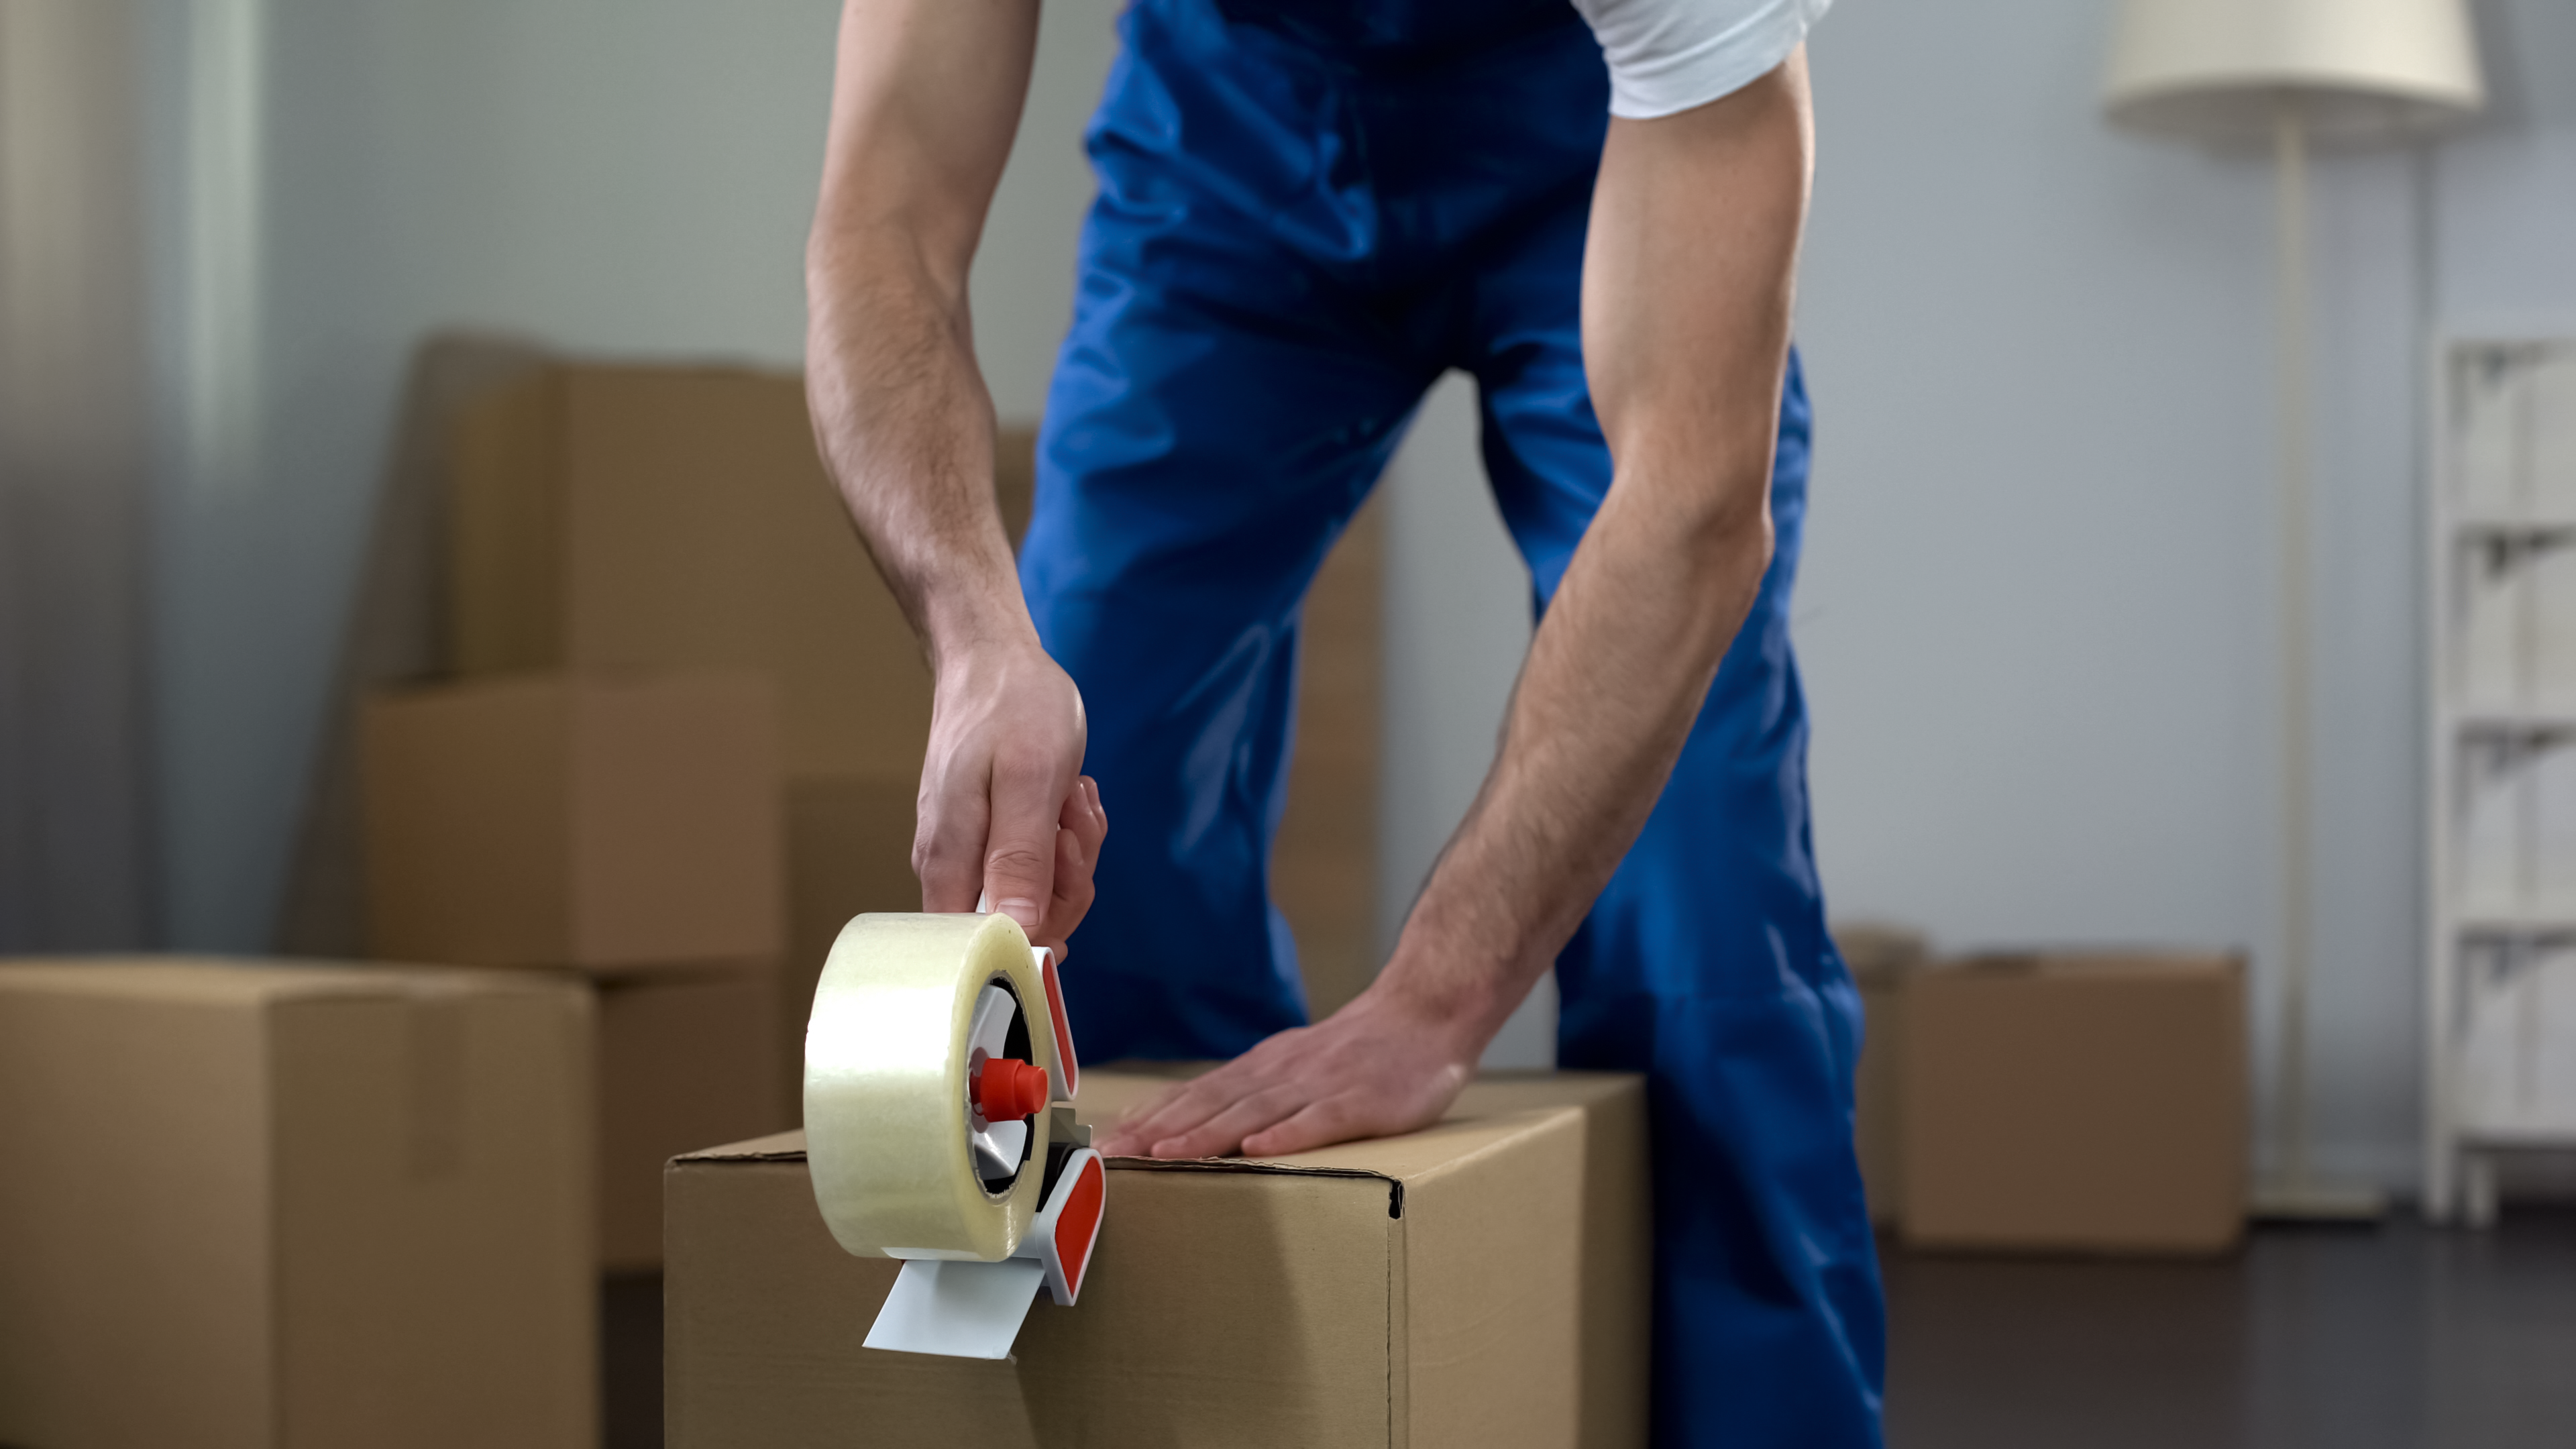 The 8 Most Important Questions to Ask Before Hiring Any Moving Company